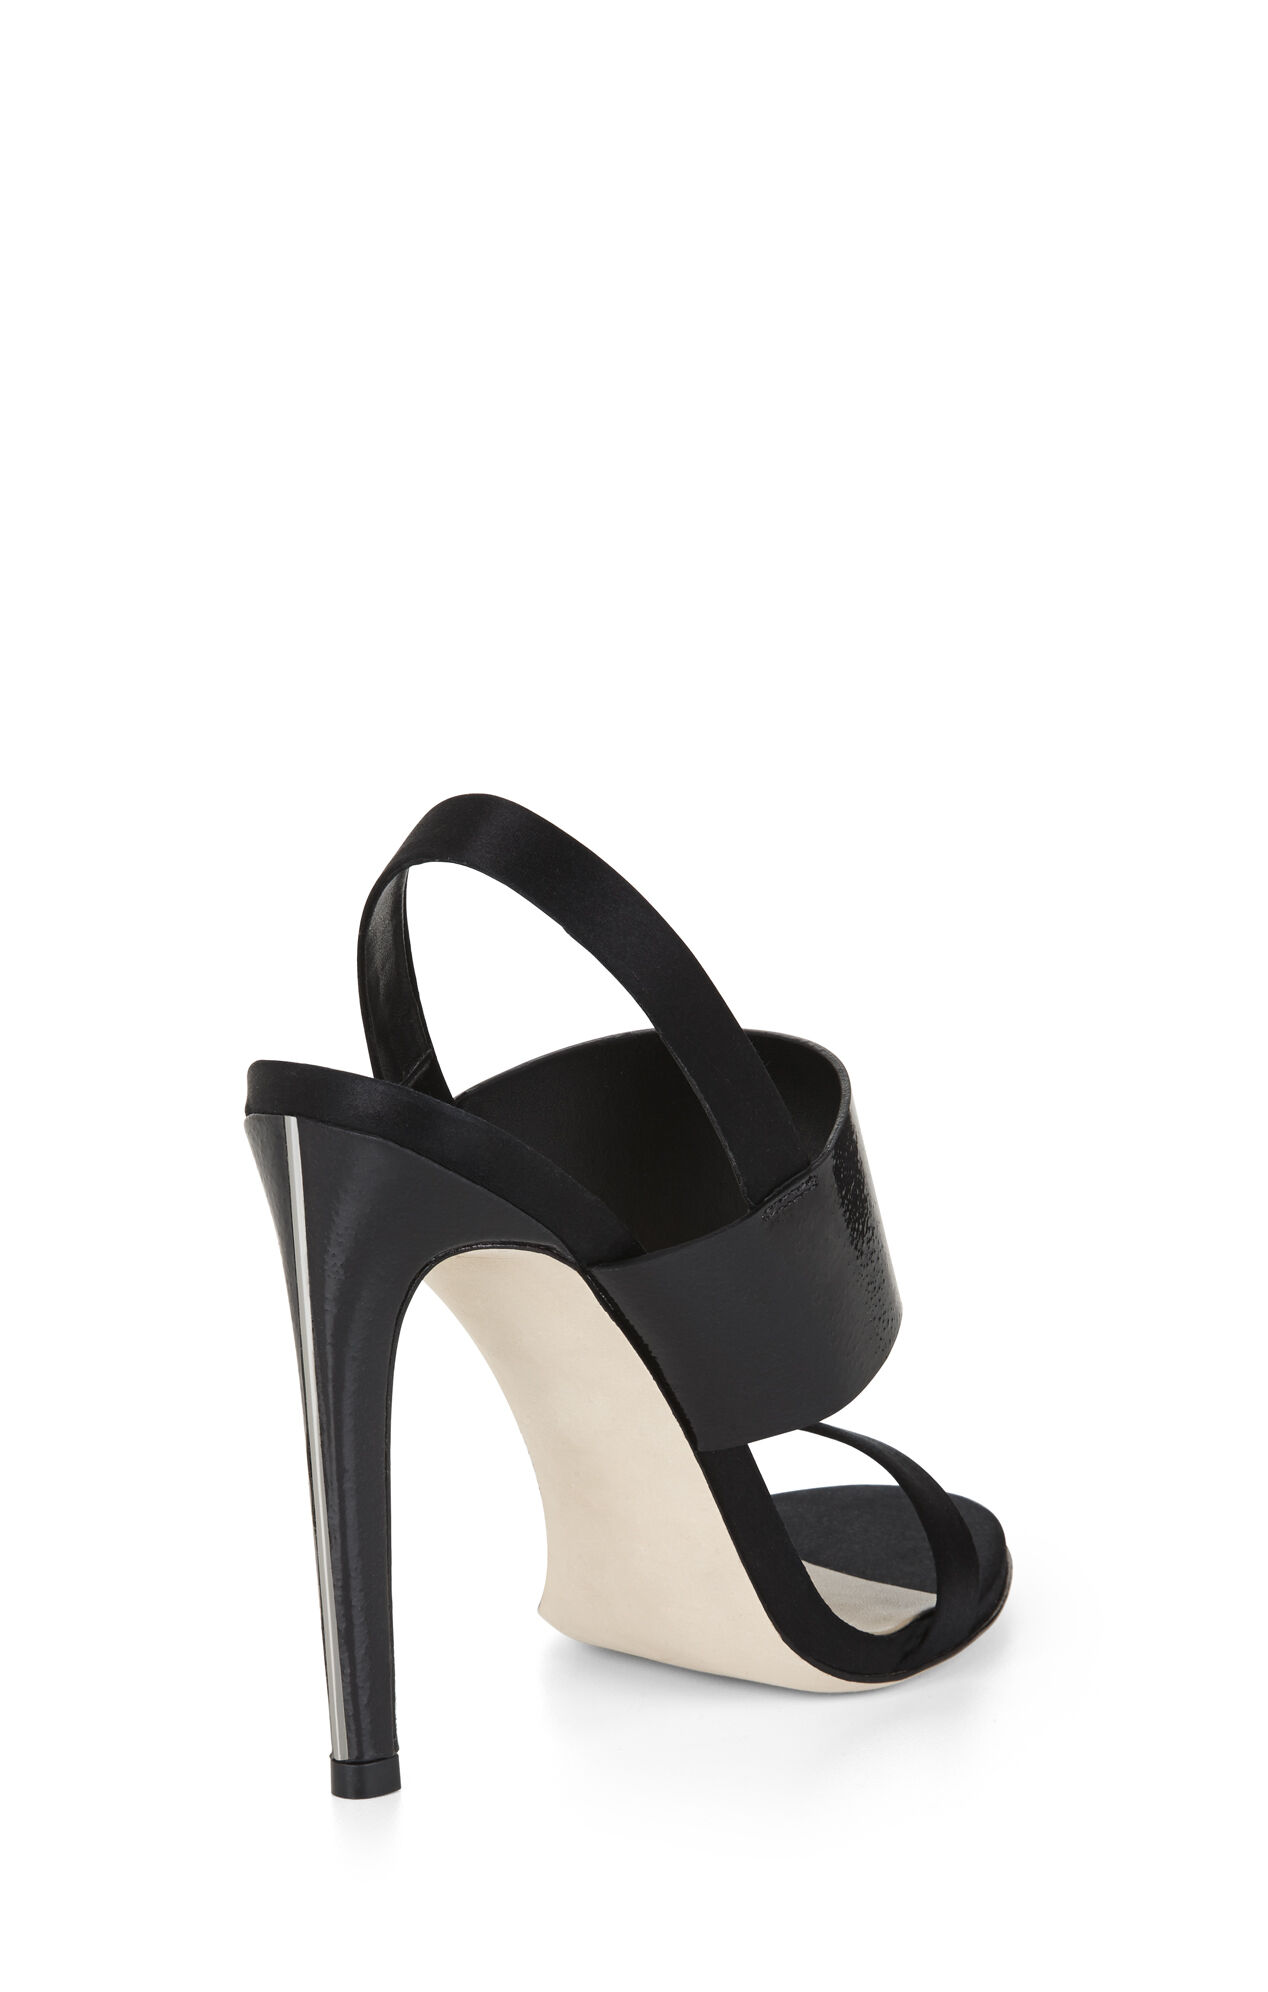 Jash High-Heel Slingback Dress Sandal